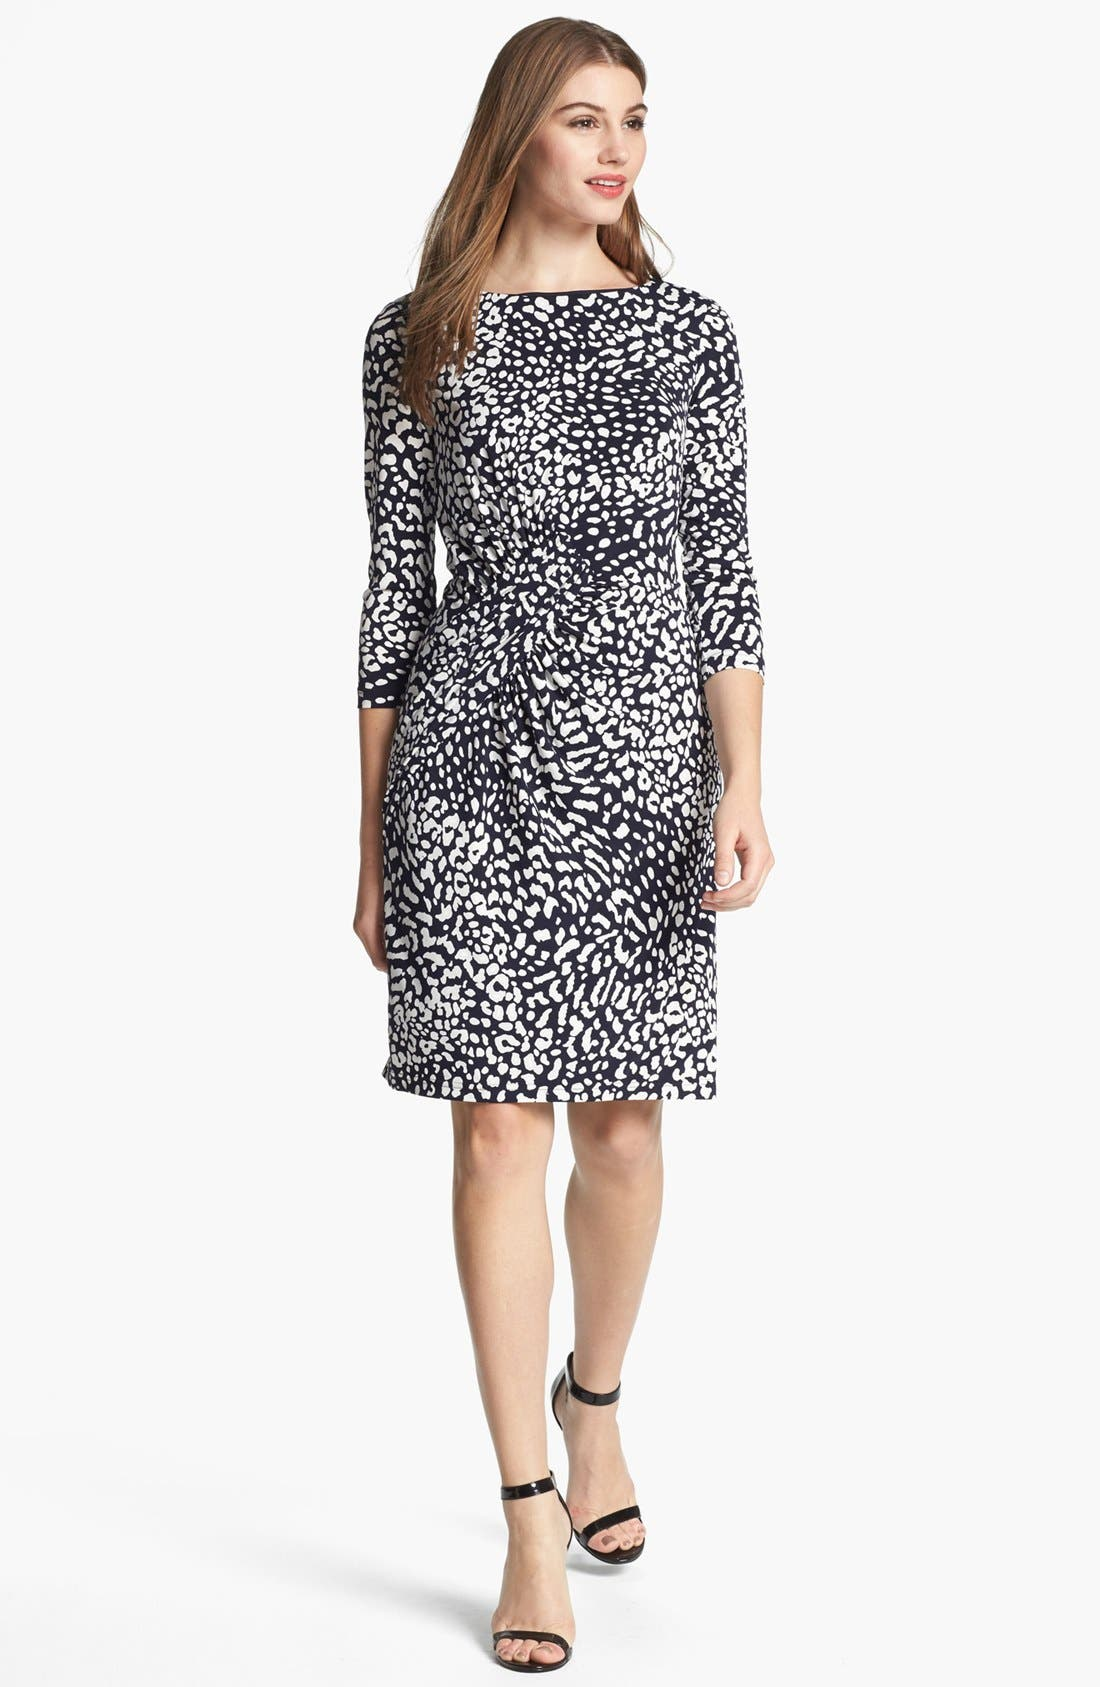 Alternate Image 1 Selected - Adrianna Papell Animal Print Ruched Sheath Dress (Plus Size)